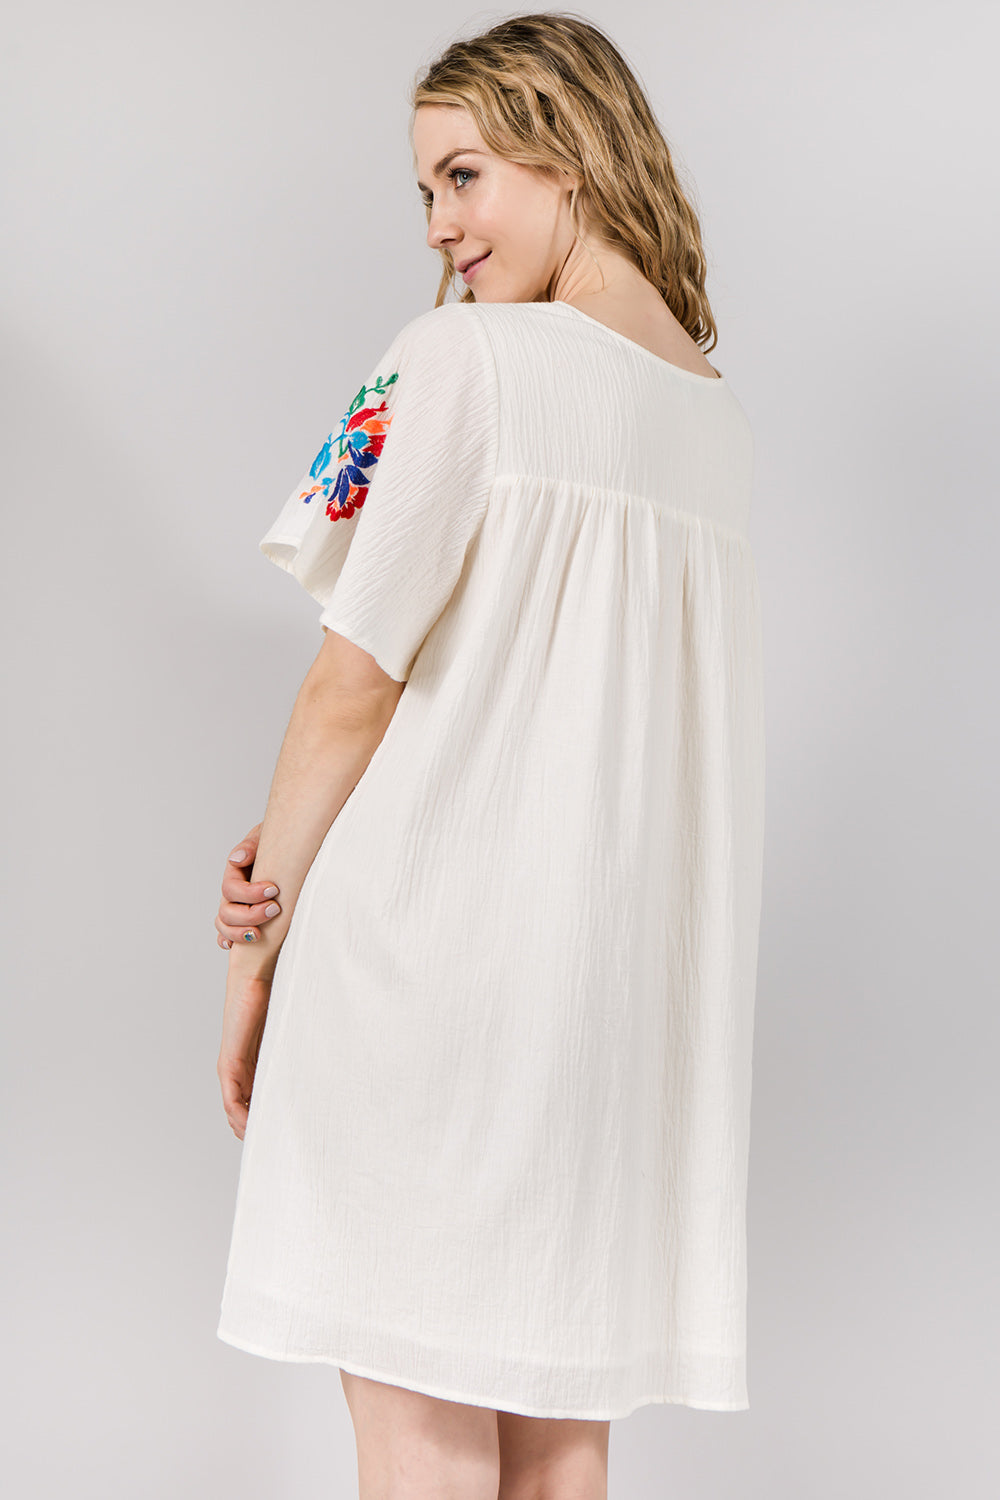 D5065 Embroidery Dress - Cream